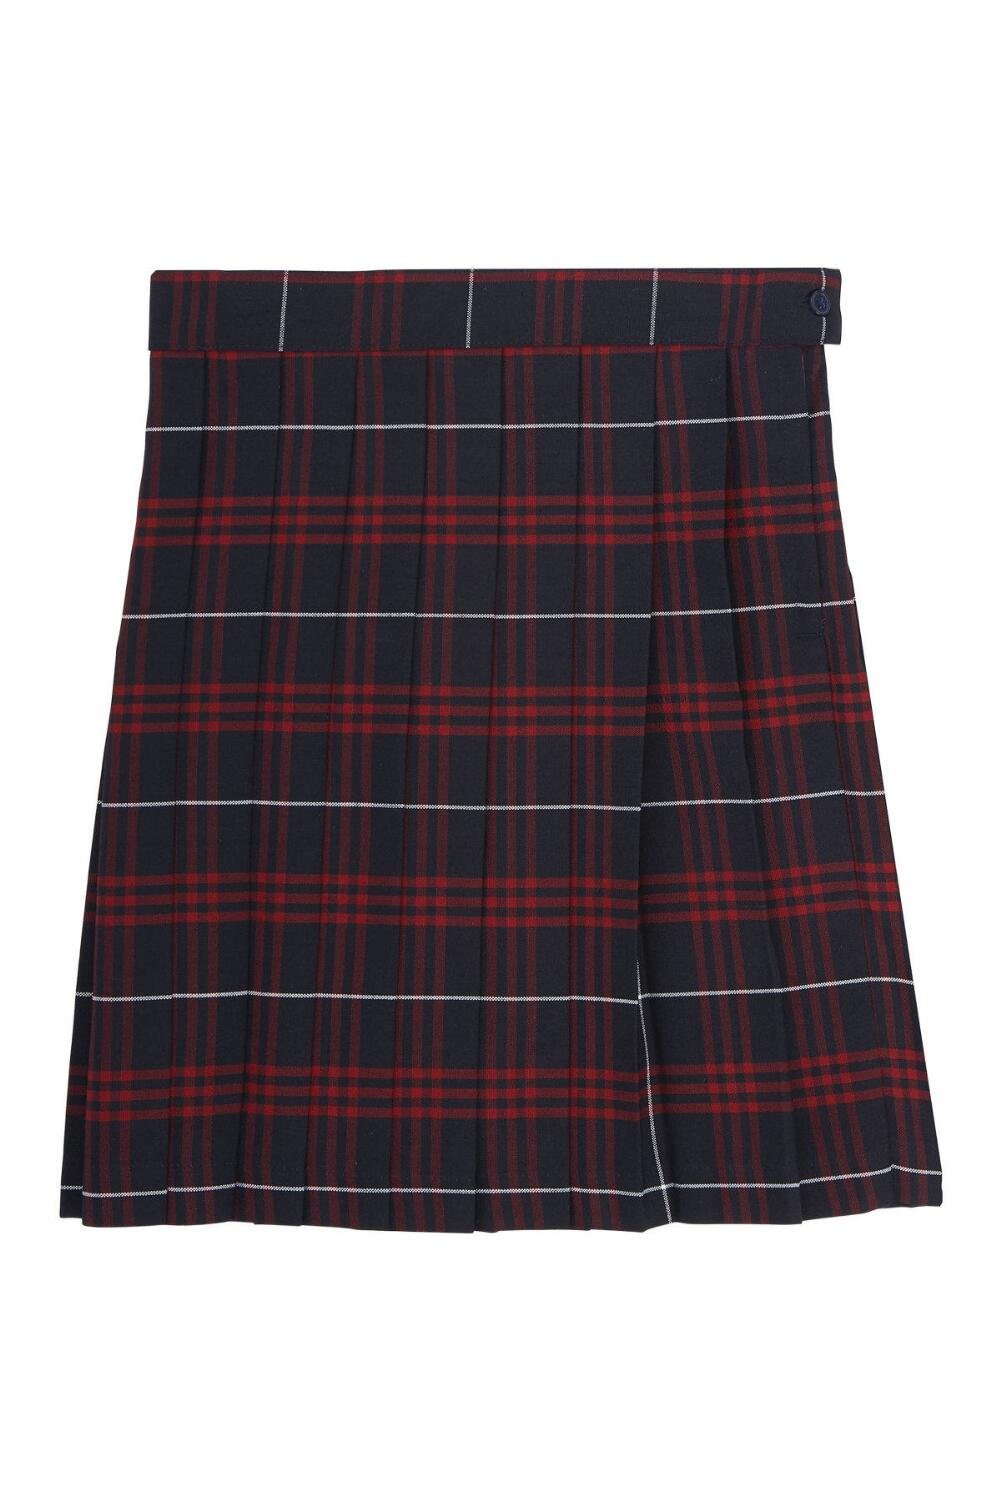 French Toast Big Girls' Plaid Pleated Skirt, Navy/Red, 10